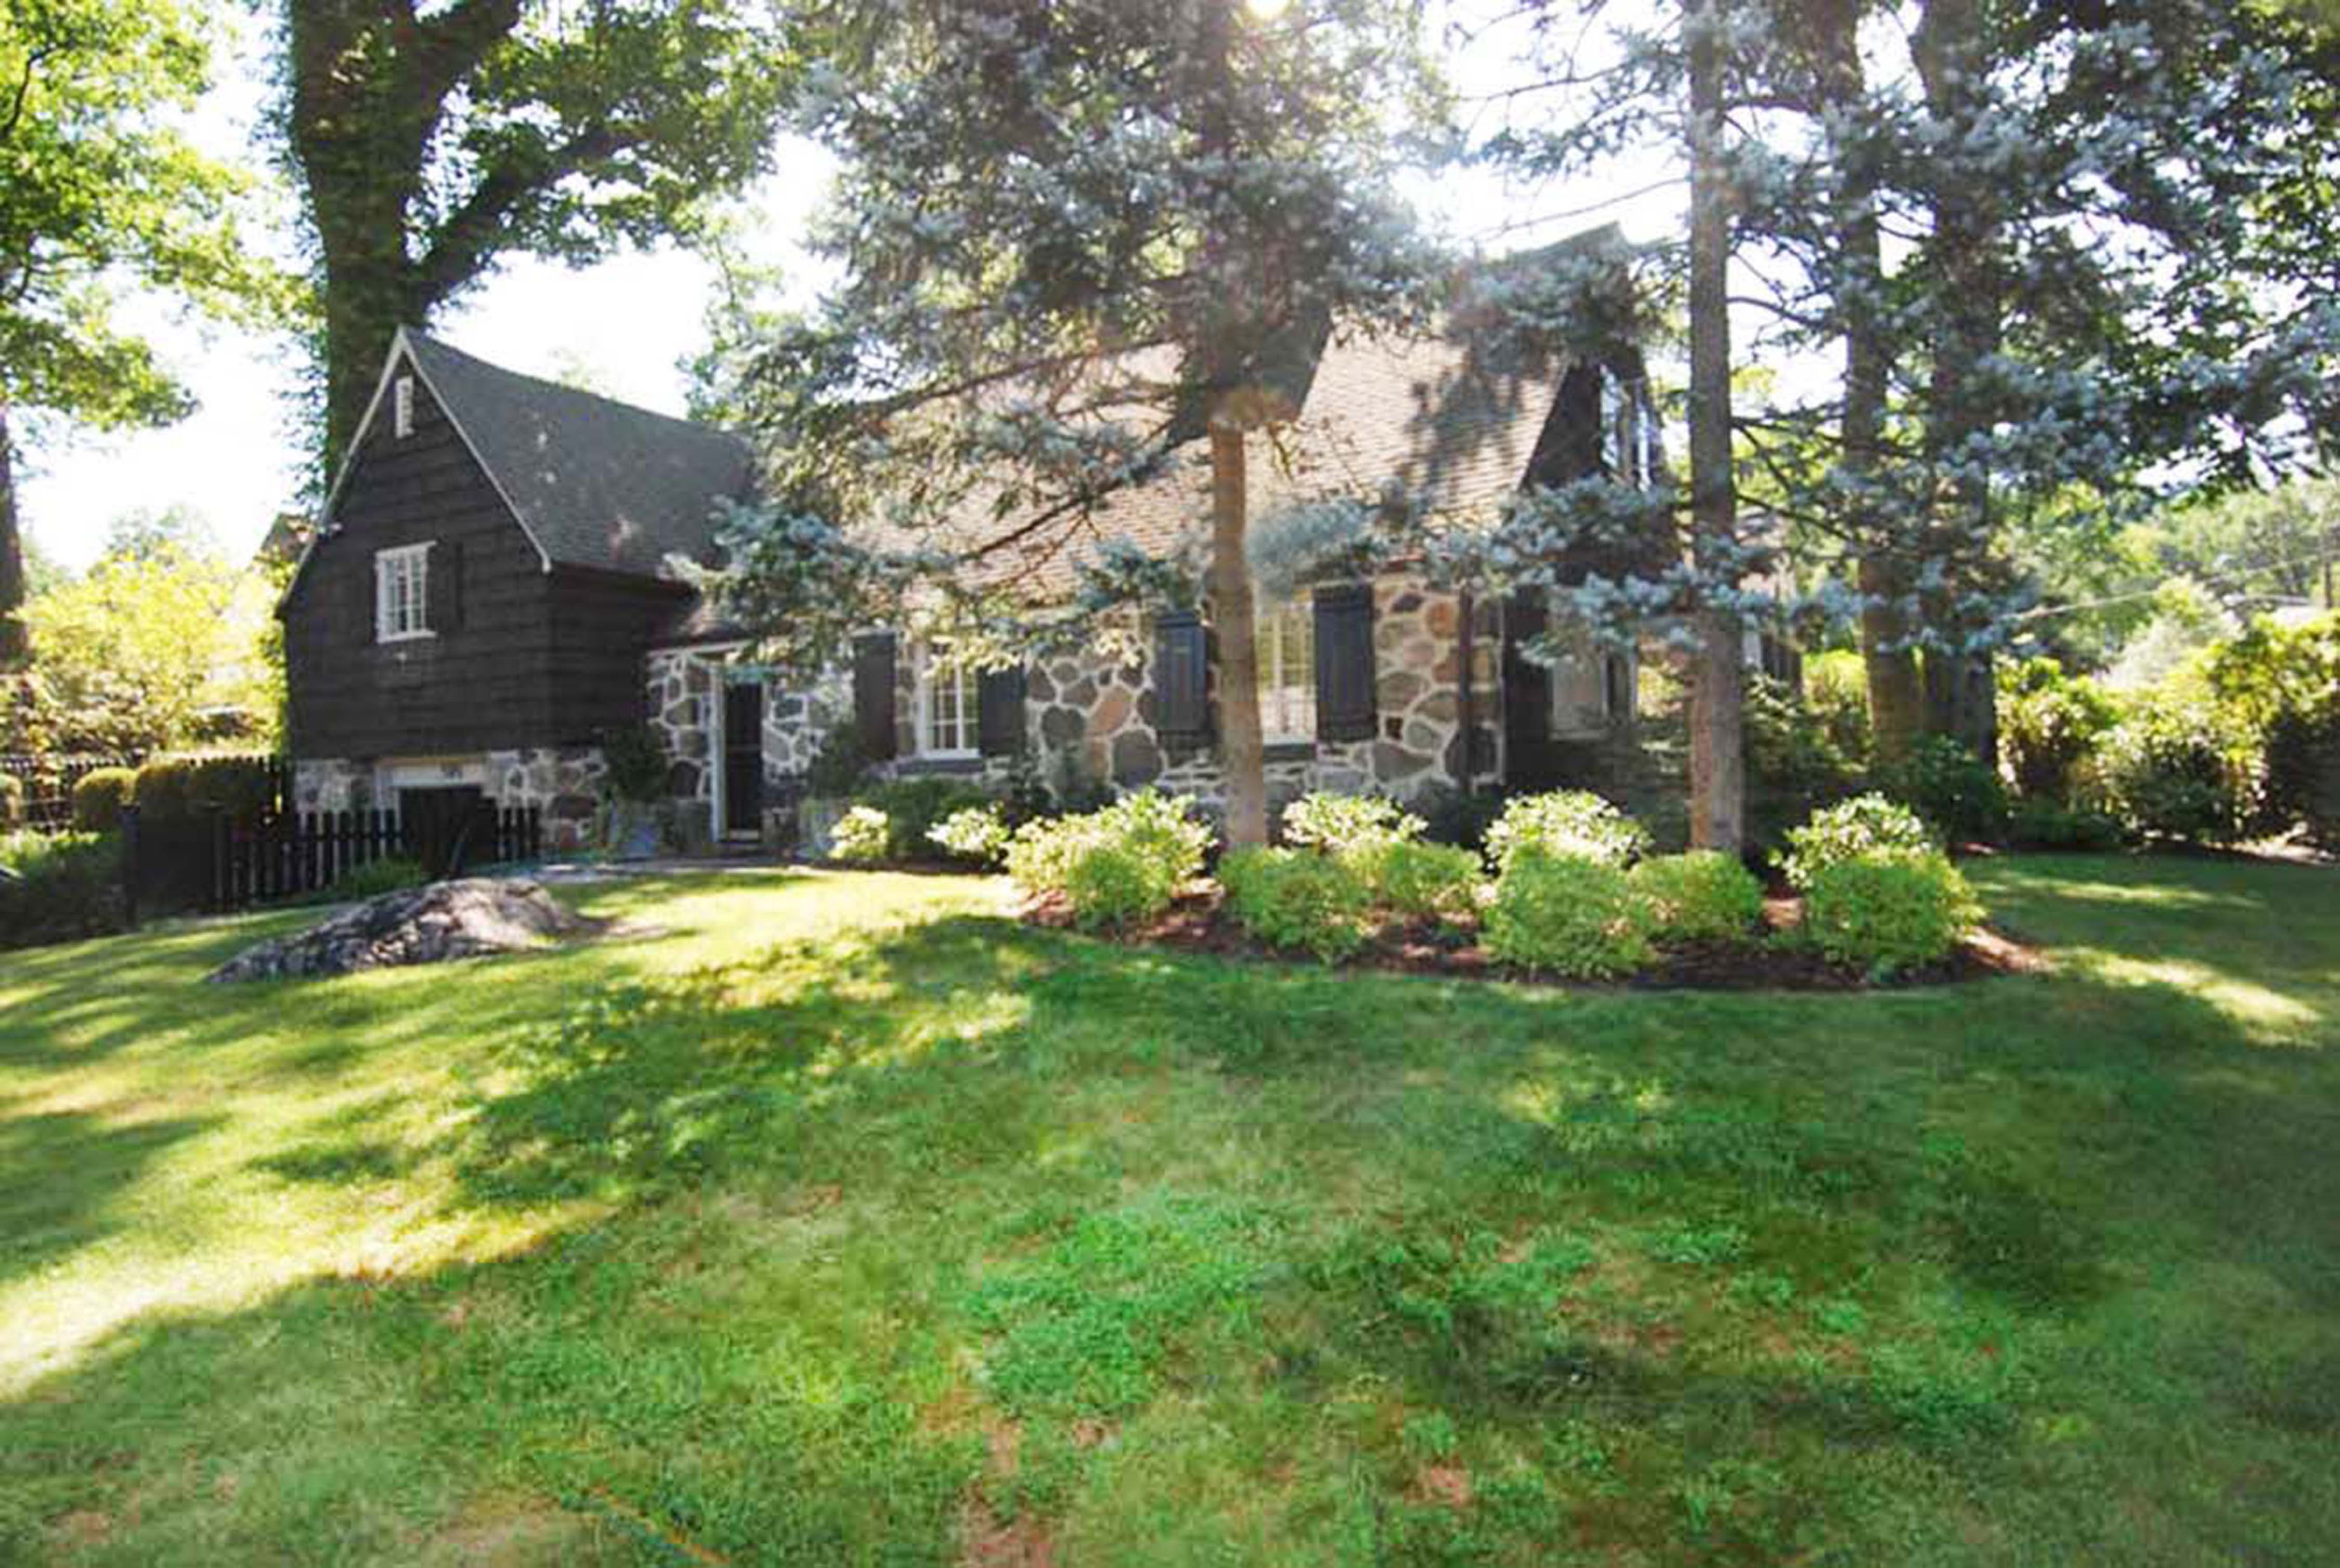 Single Family Home for Sale at Larchmont Woods Cape/Colonial 505 Forest Avenue New Rochelle, New York 10804 United States